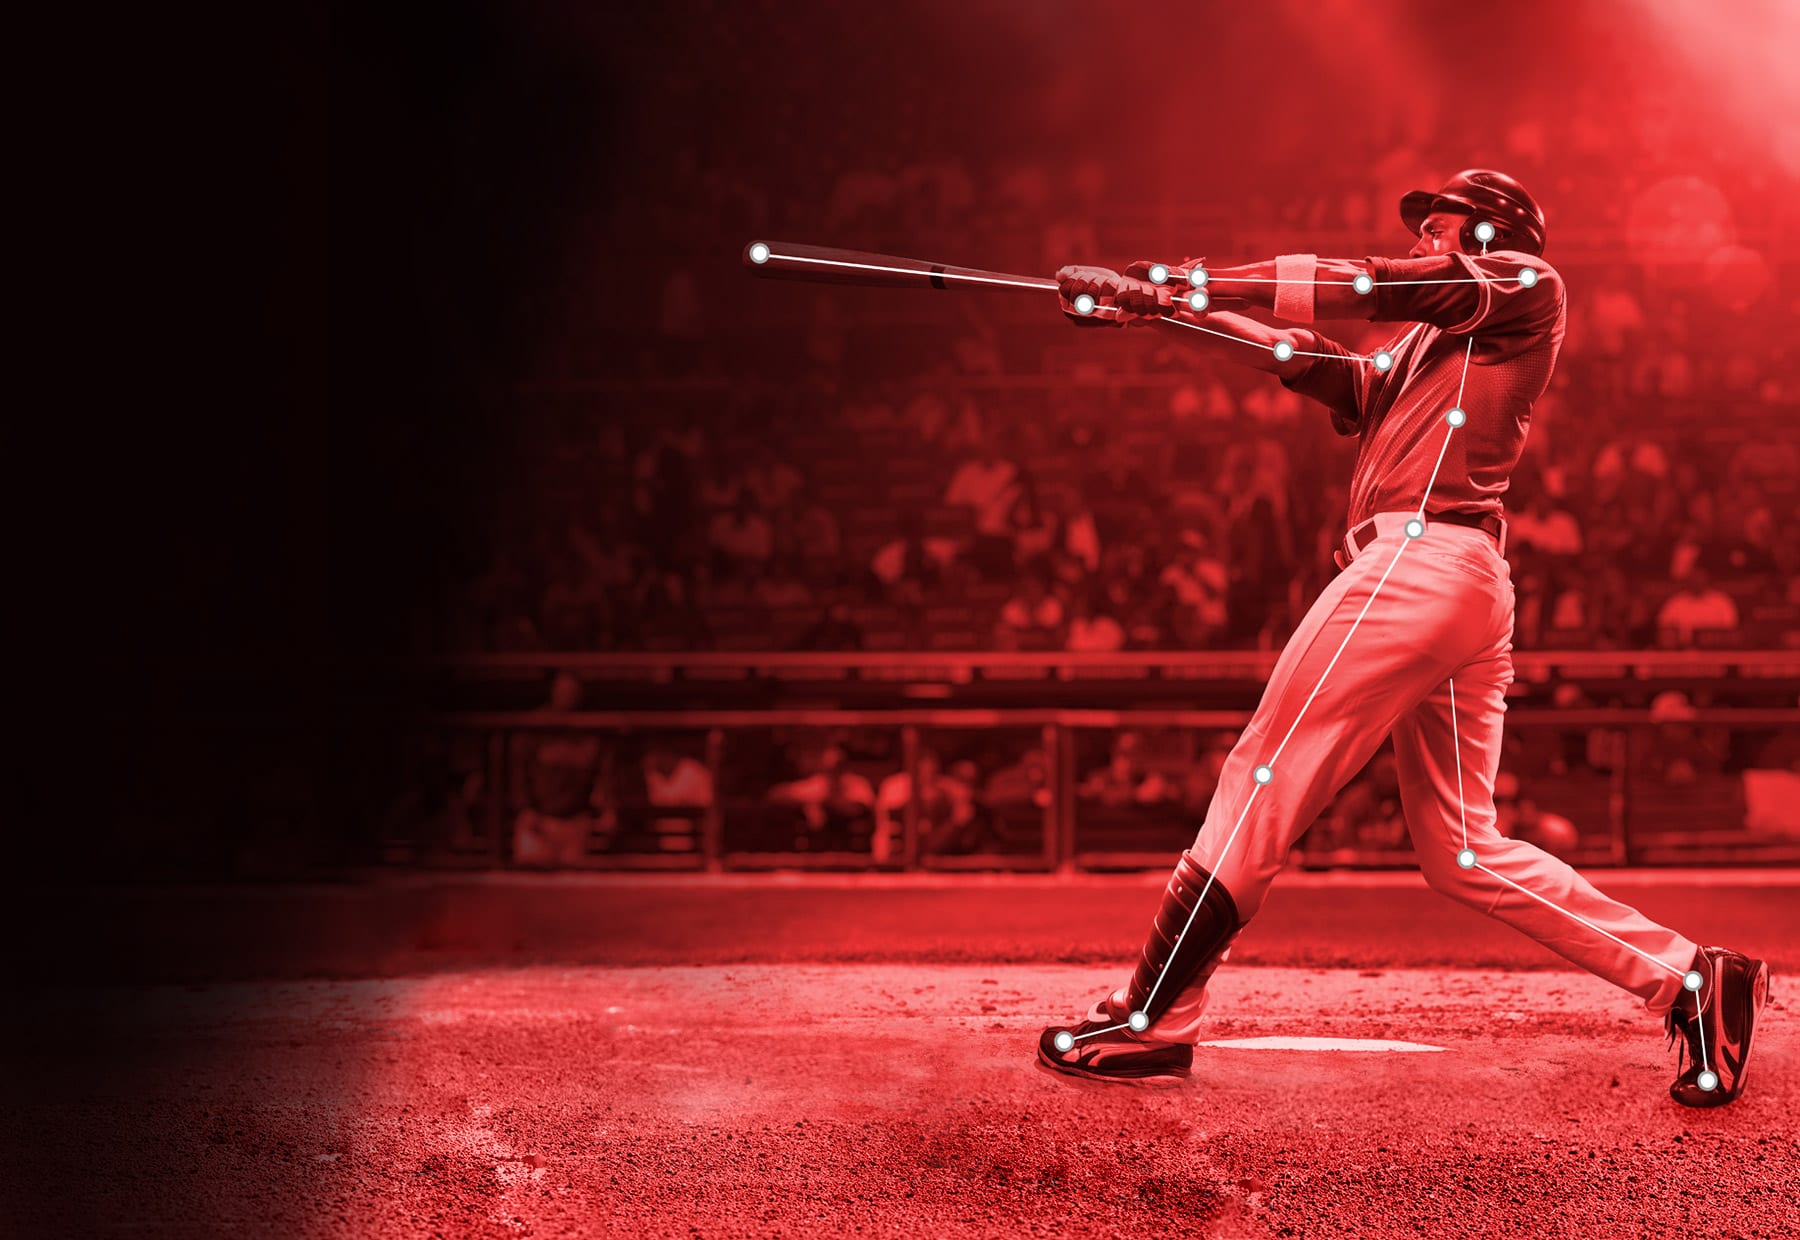 In-Game Markerless Motion Capture Technology for Baseball